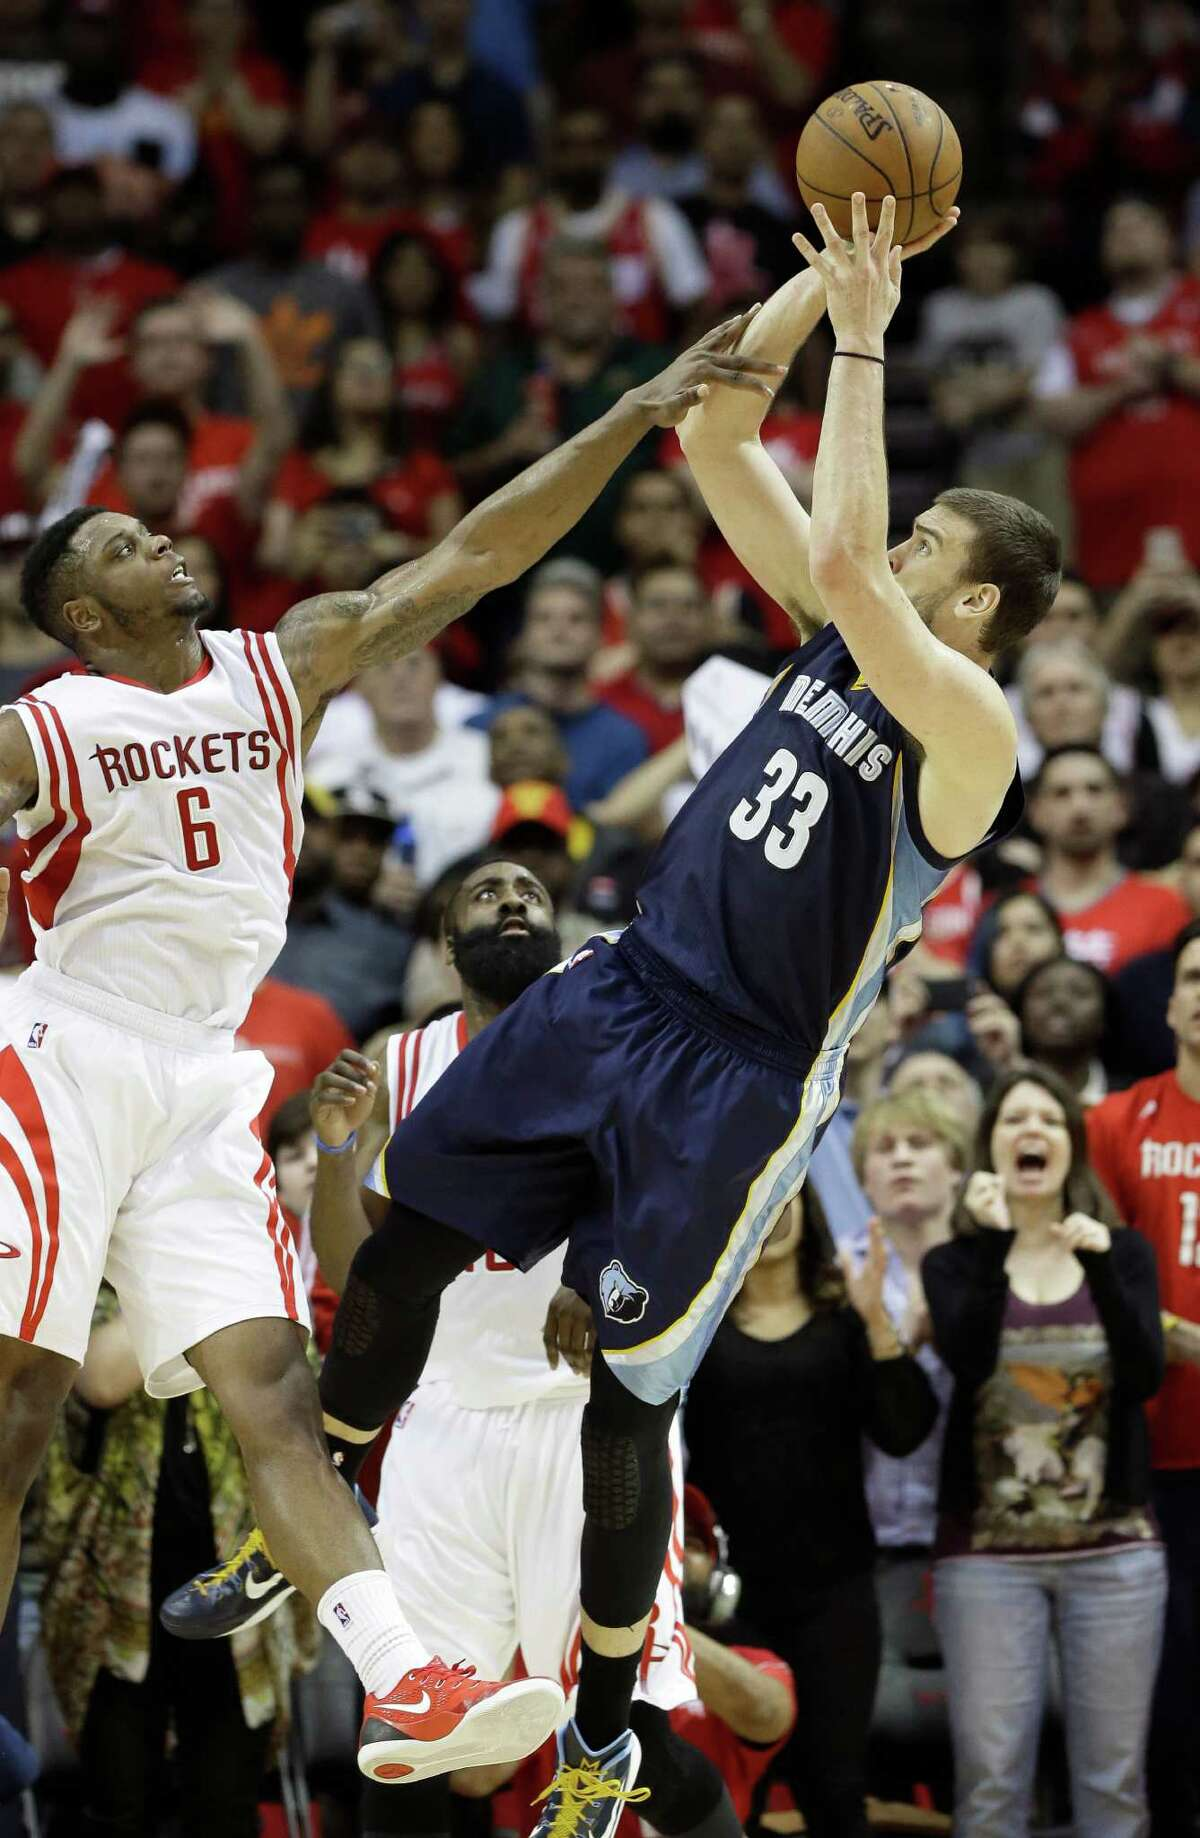 Marc Gasol (33) gives the Grizzlies the game-winner with a 10-footer over the Rockets' Terrence Jones with 0.1 seconds remaining Wednesday night at Toyota Center.